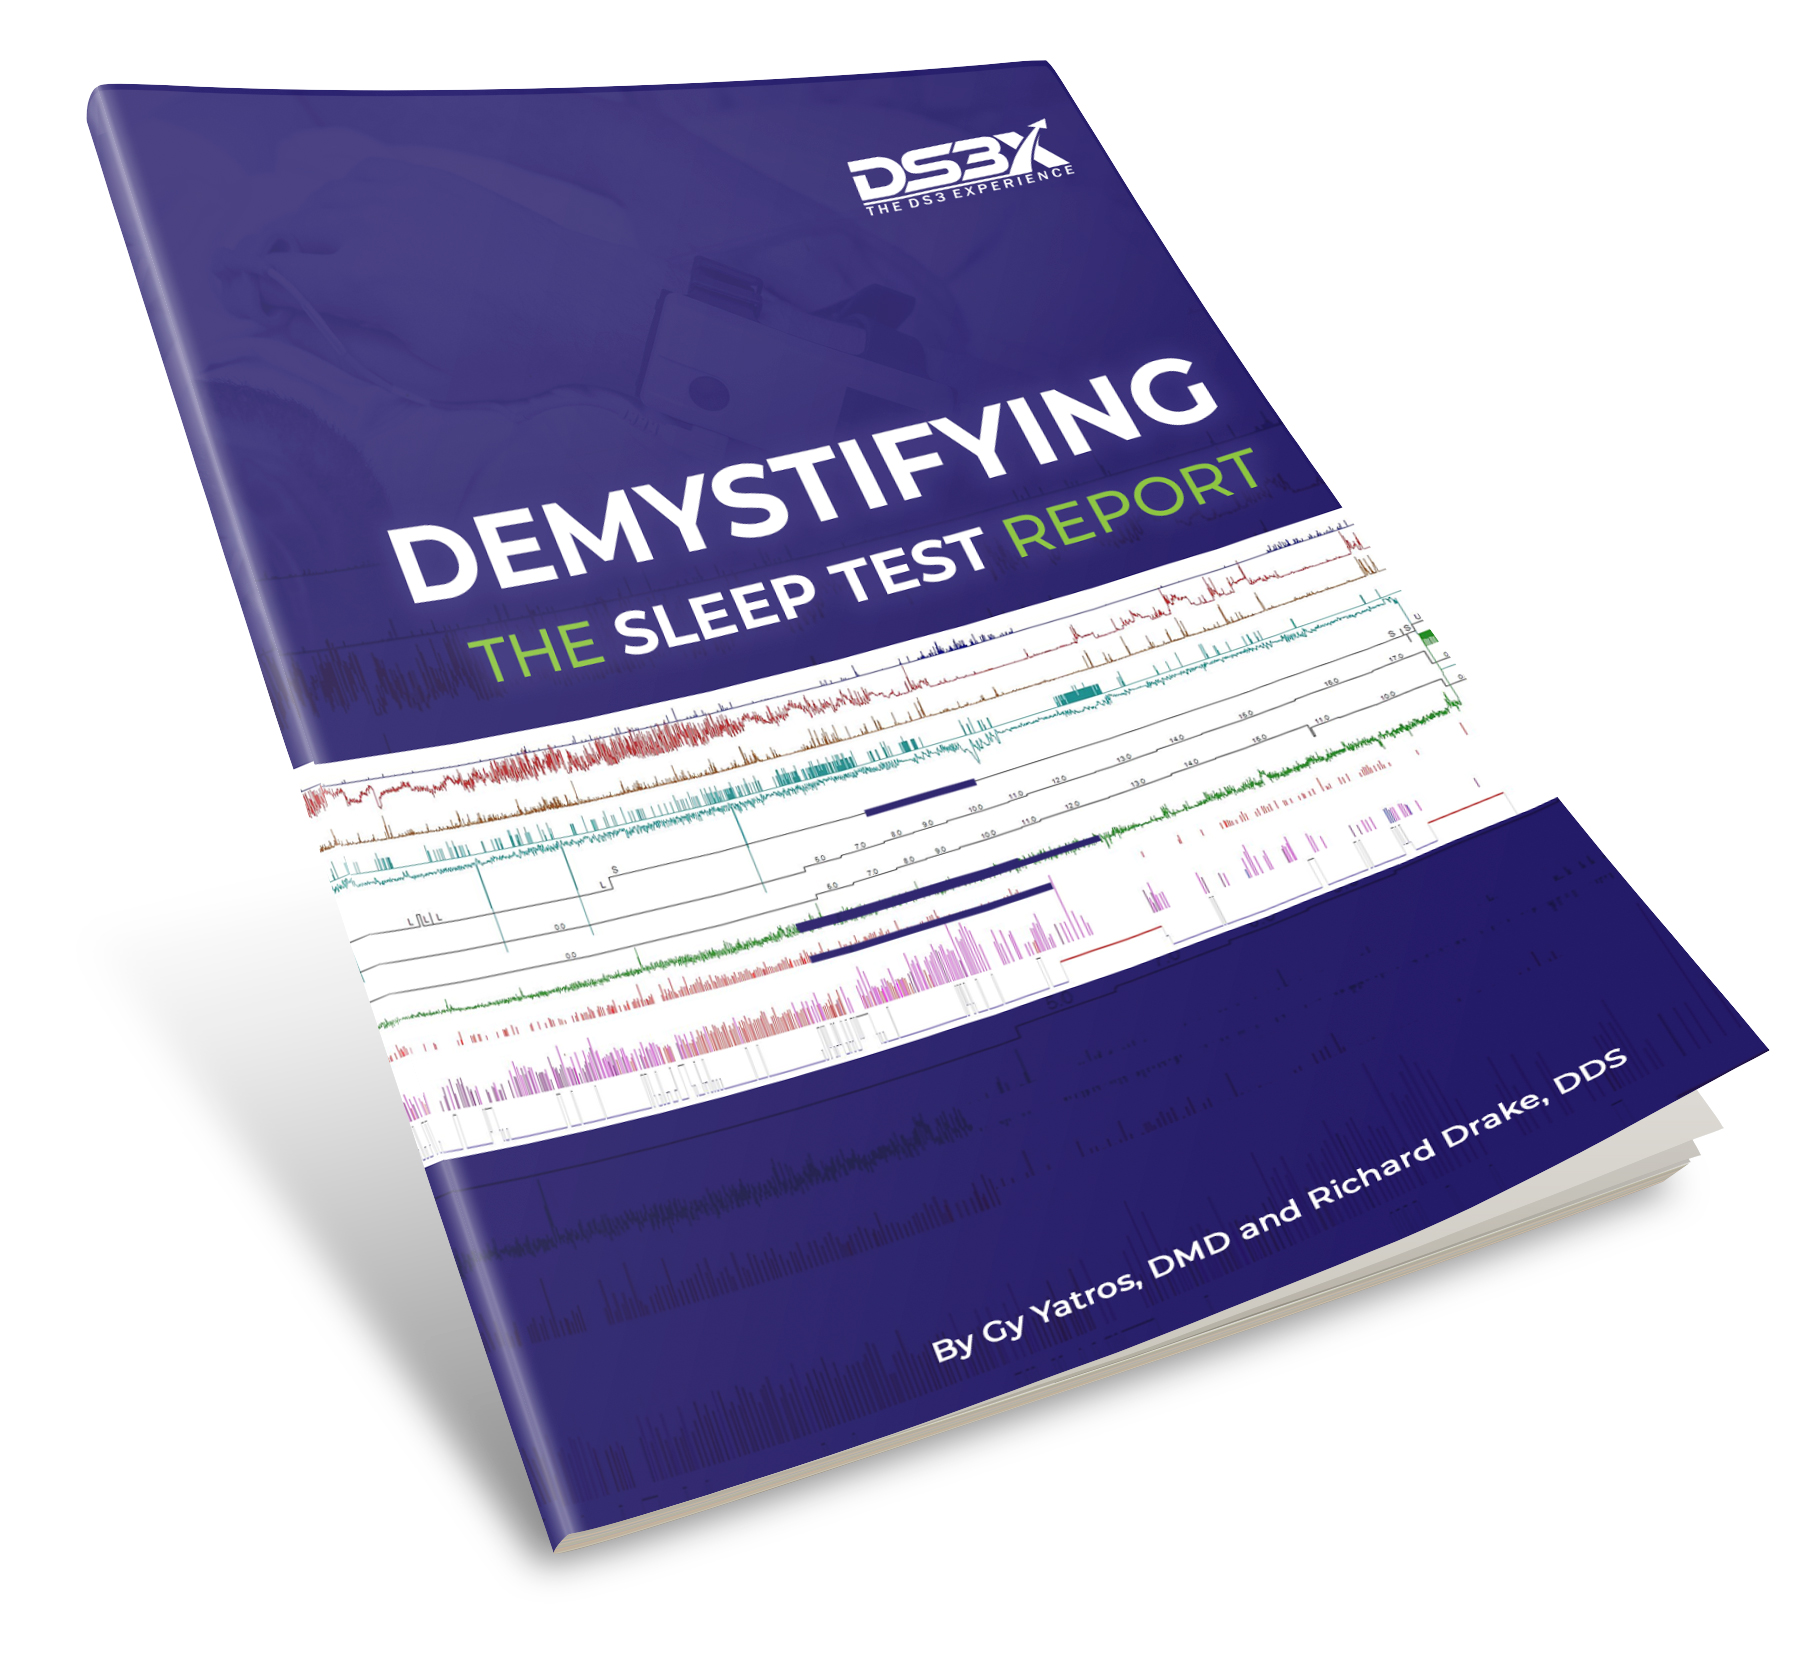 Demystifying the Sleep Test Report eBook